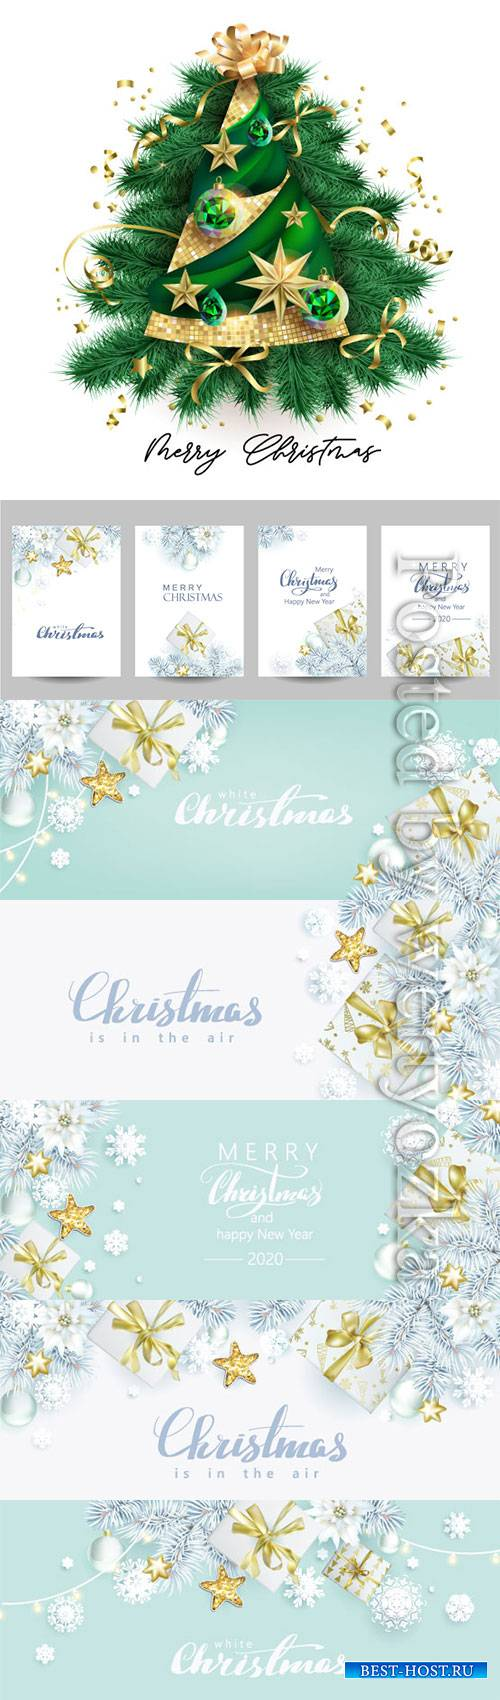 Christmas composition with spruce branches and gift boxes